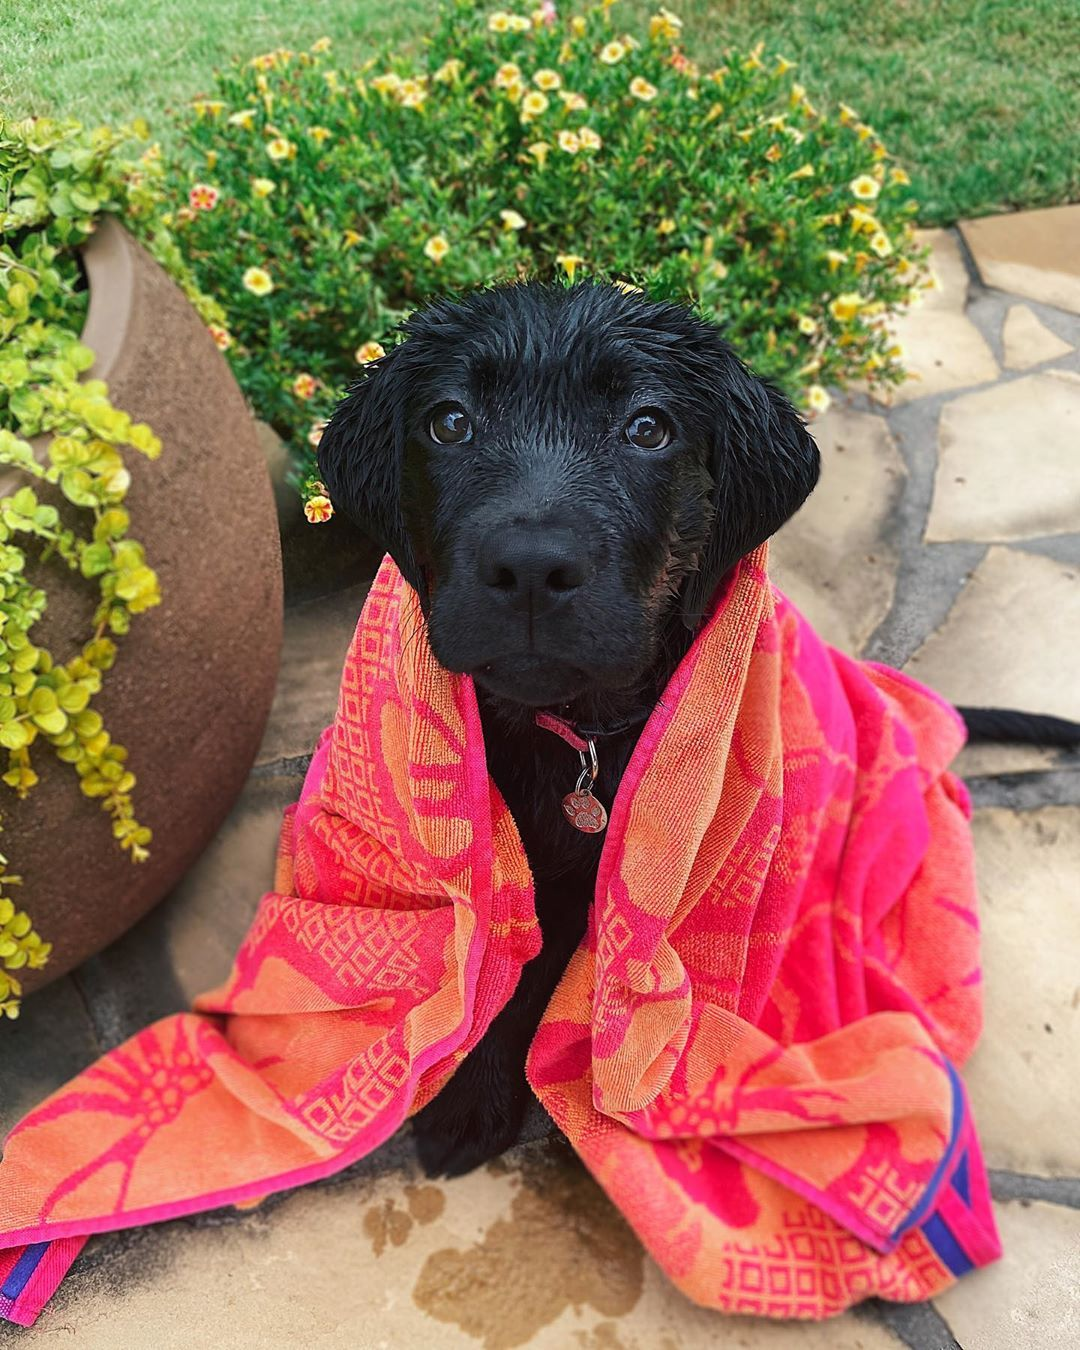 Georgia The Black Lab On Instagram I Loveeee To Be Towel Dried After A Dip In The Pool If You Rub My Ears I Start Snoring Be In 2020